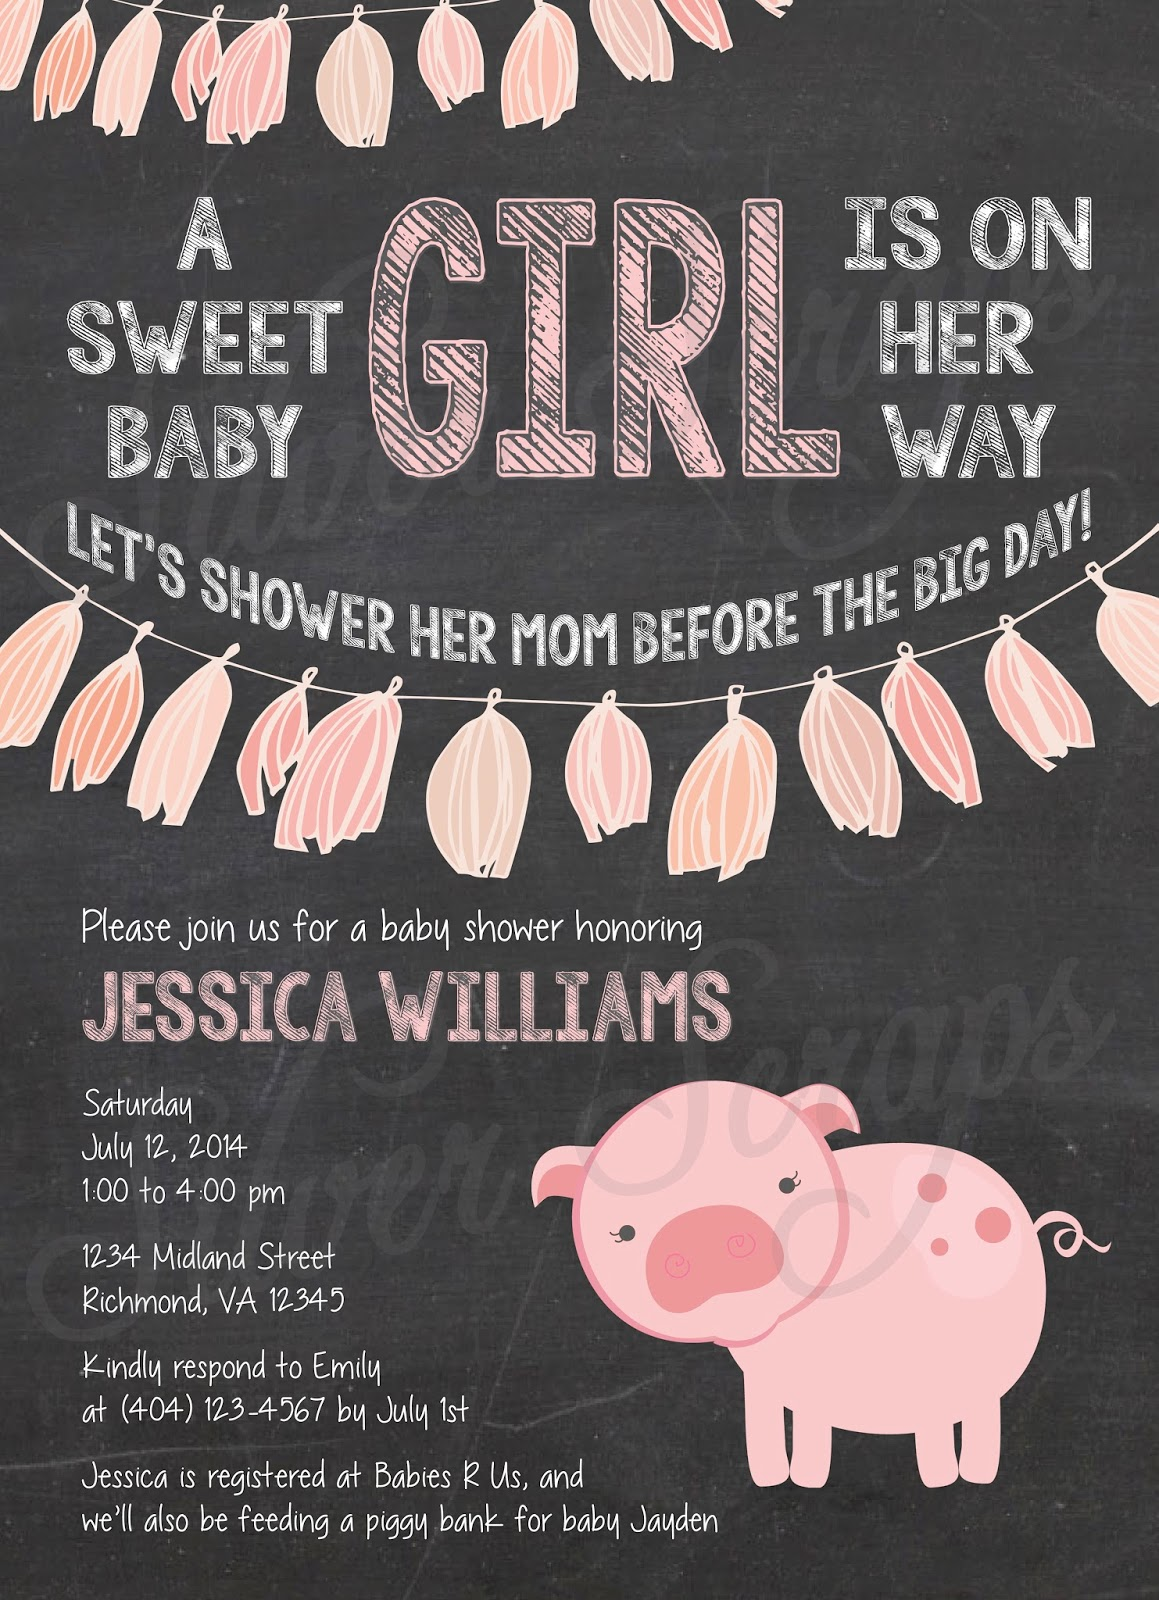 Chalkboard, Bunting and Pink Piggy Custom Girl Baby Shower Invitation - Tissue Paper Garland Pig Farm Garland Banner Flags Chalk Black White - 5 Printable Designs - Silver Scraps Peach Light Pink Blush Cream